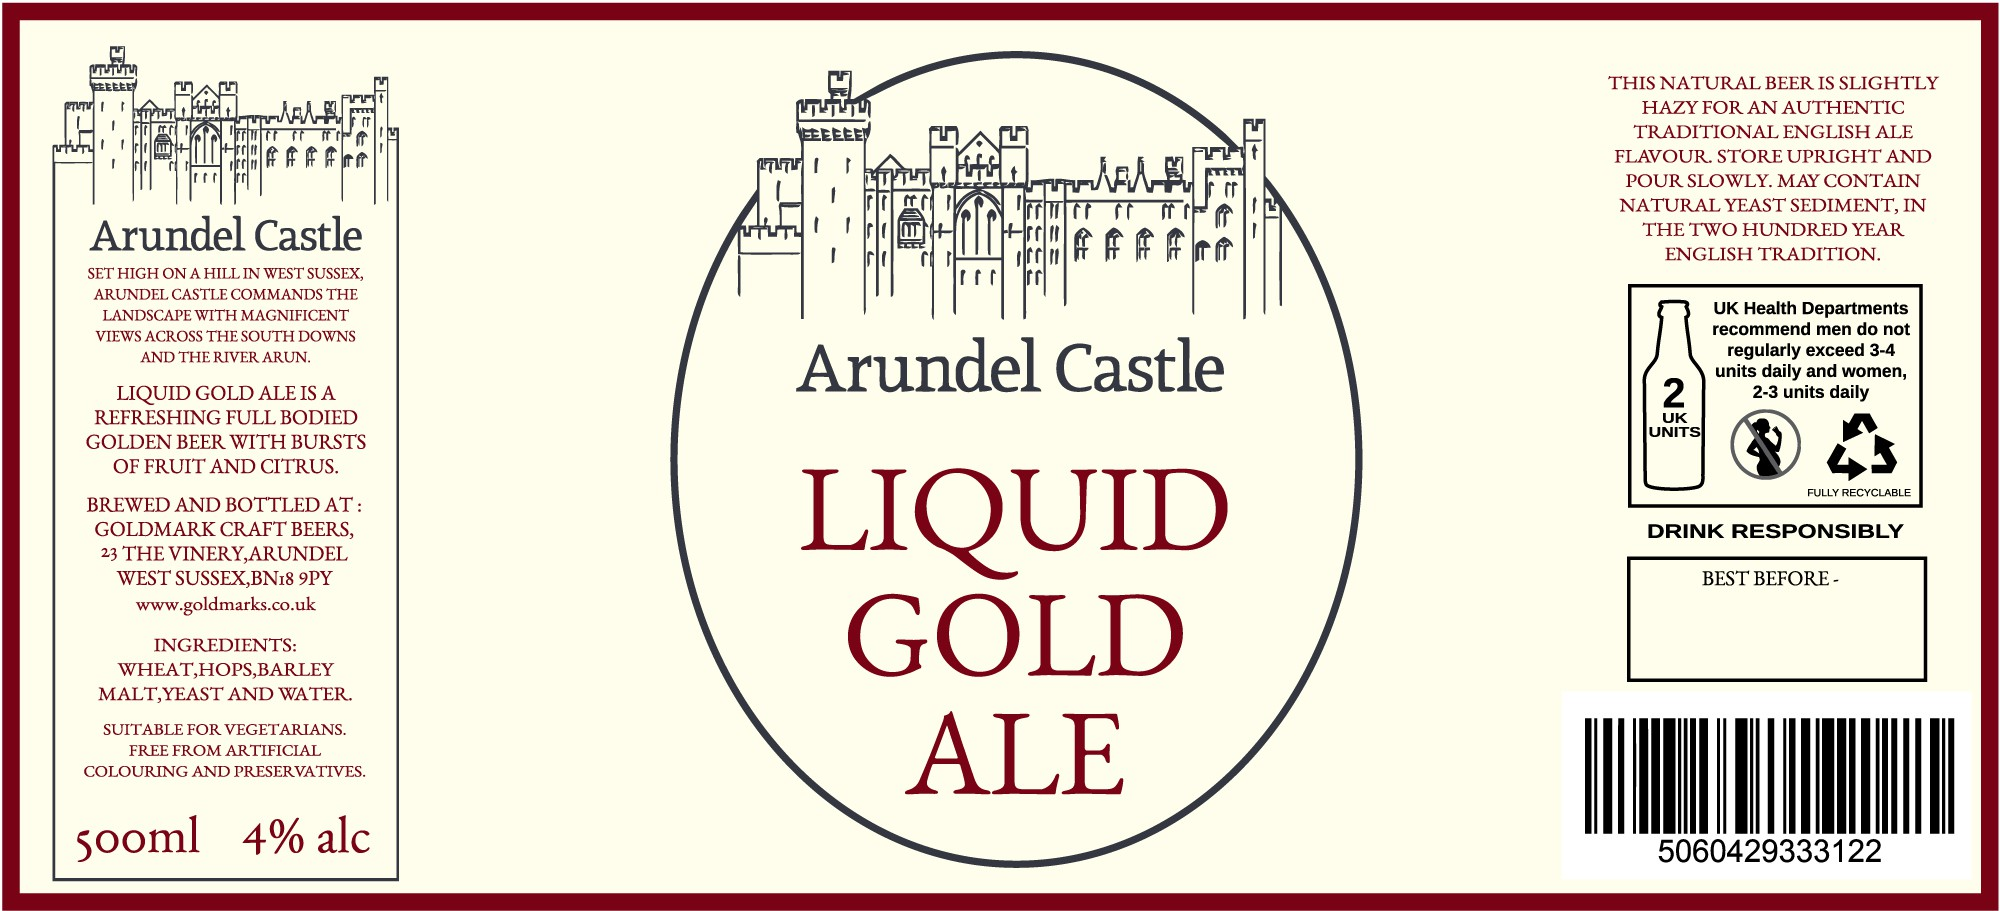 Arundel Castle Beer bottle label